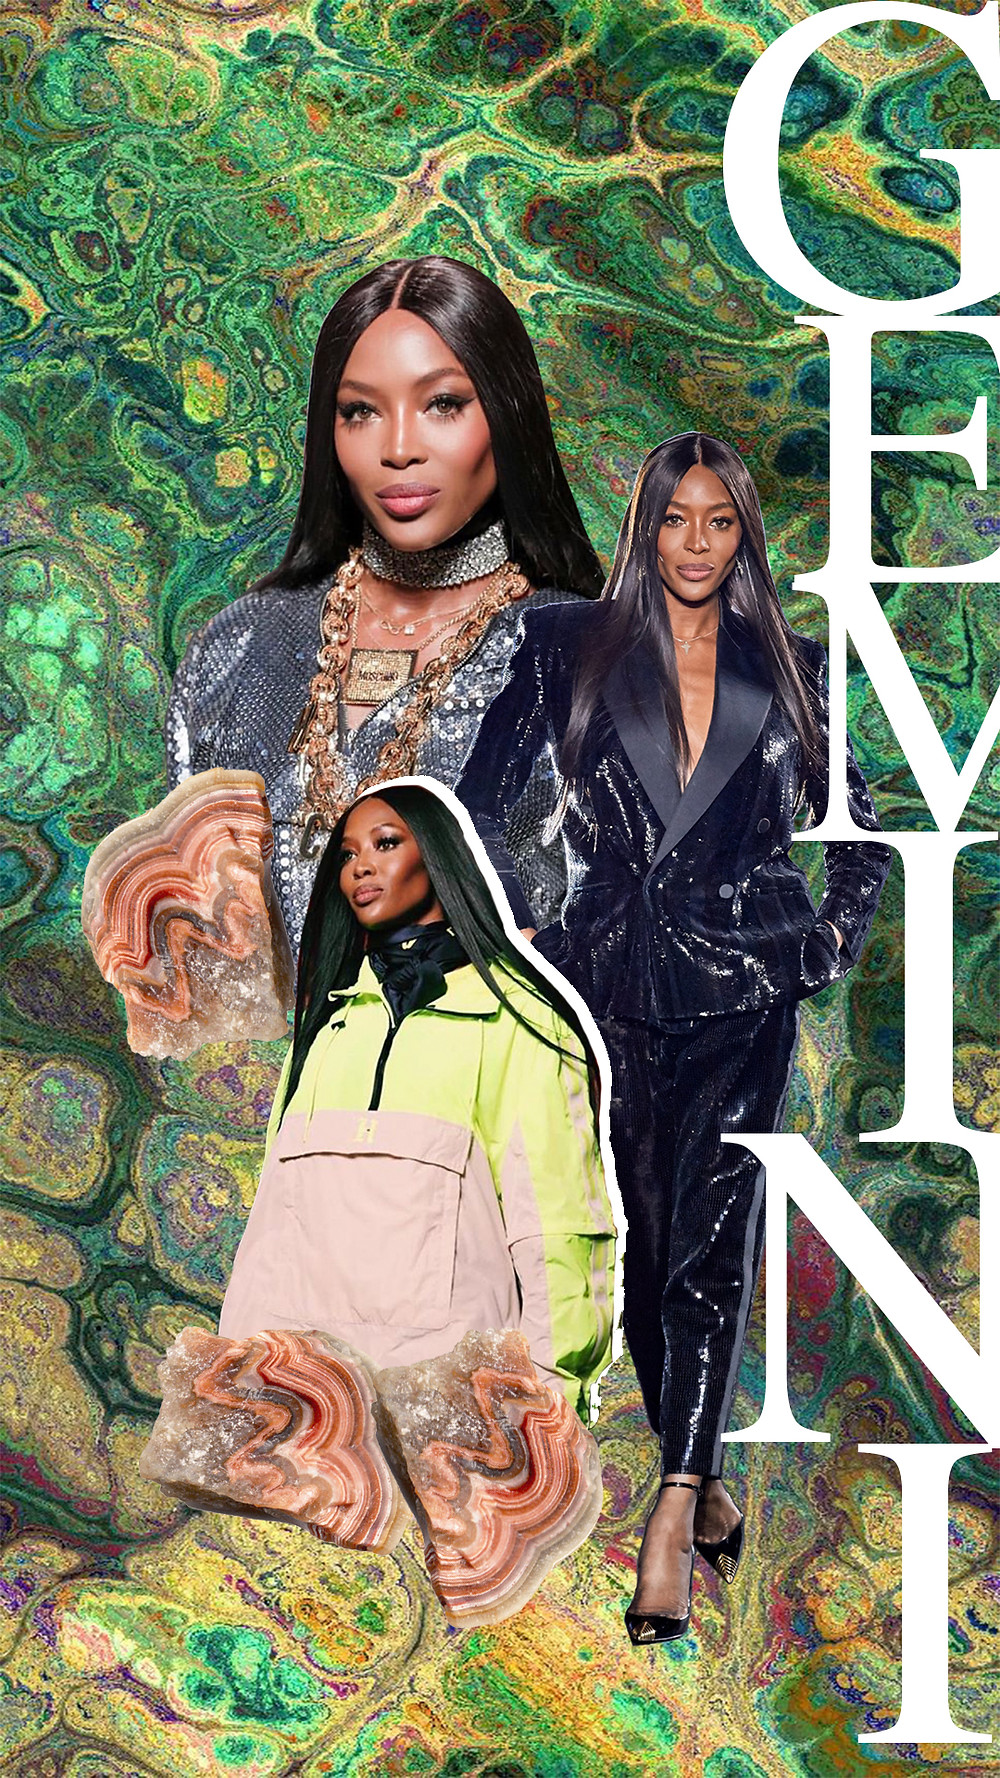 Naomi Campbell images via IMAXTREE/Daniele Oberrauch